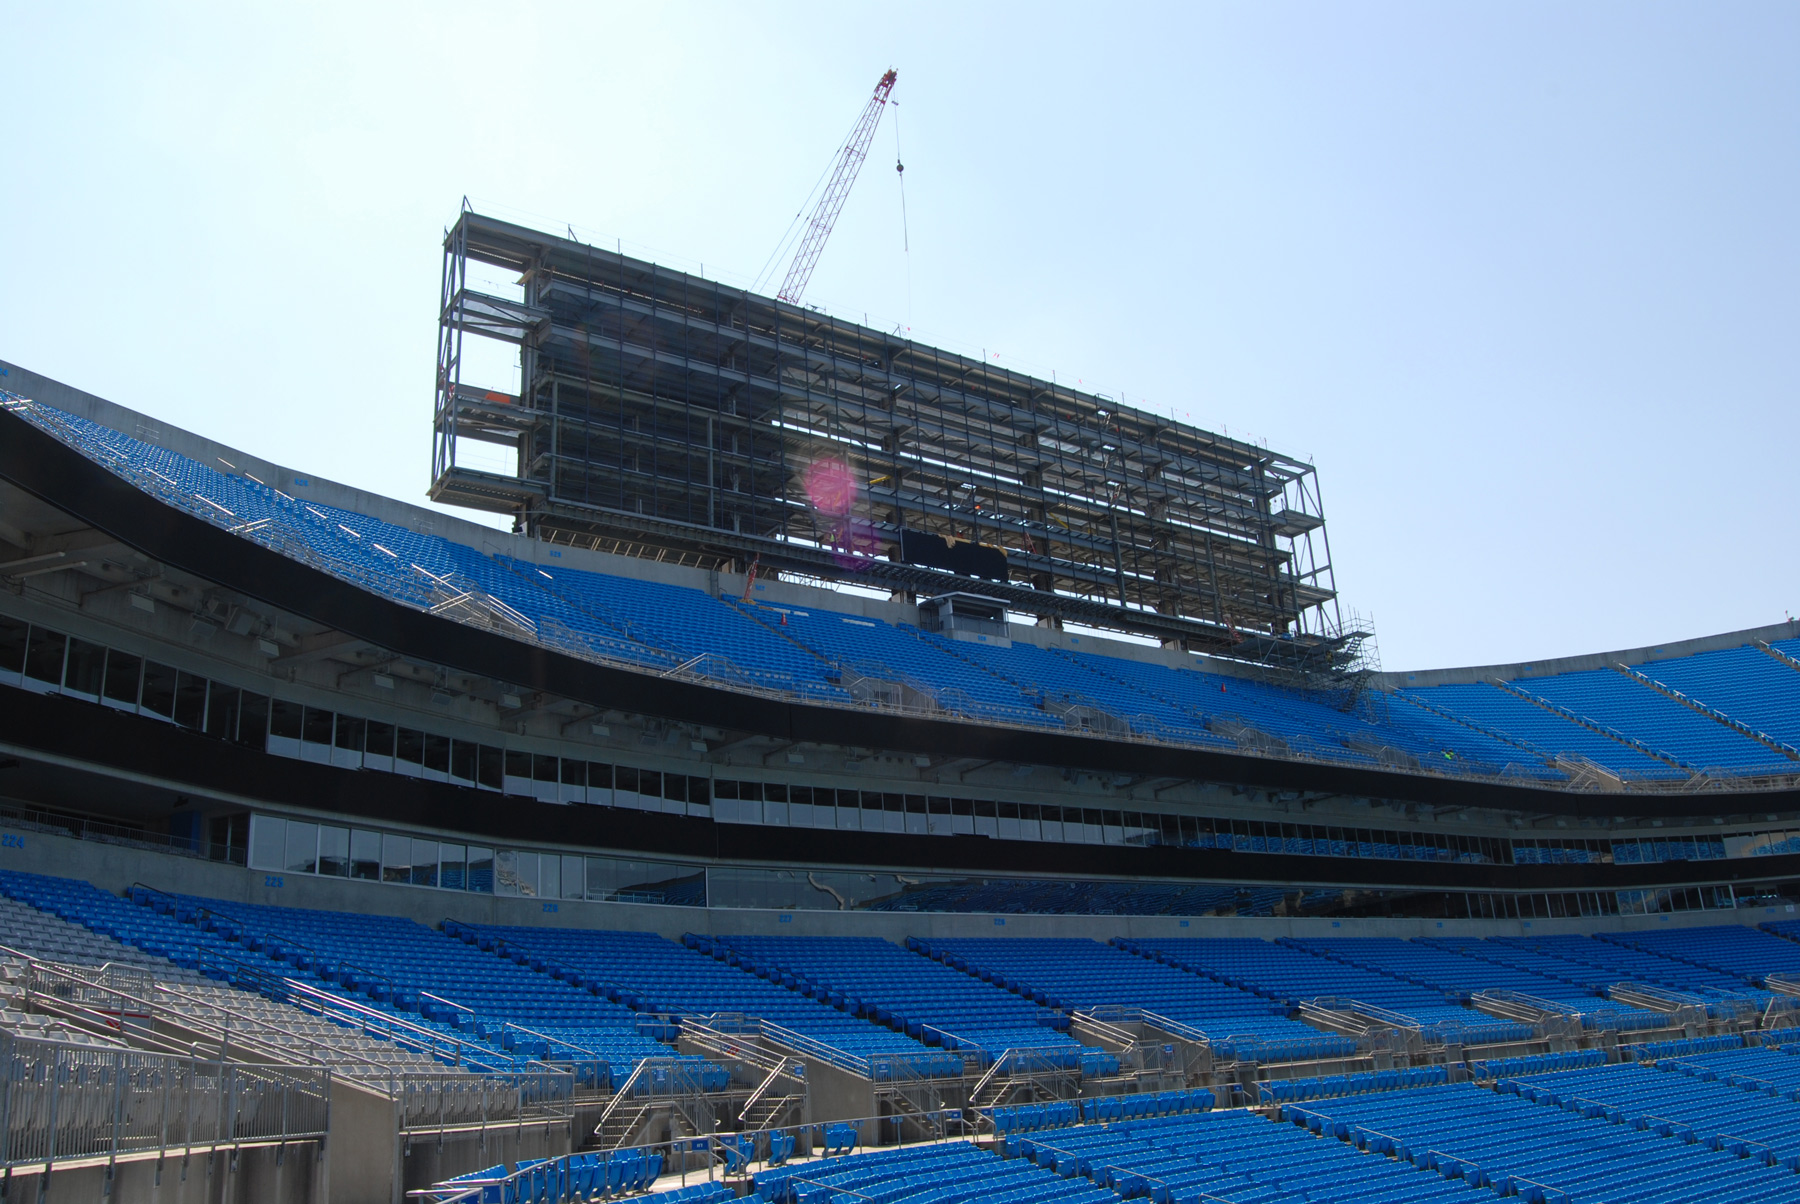 Construction of the new video boards in 2014